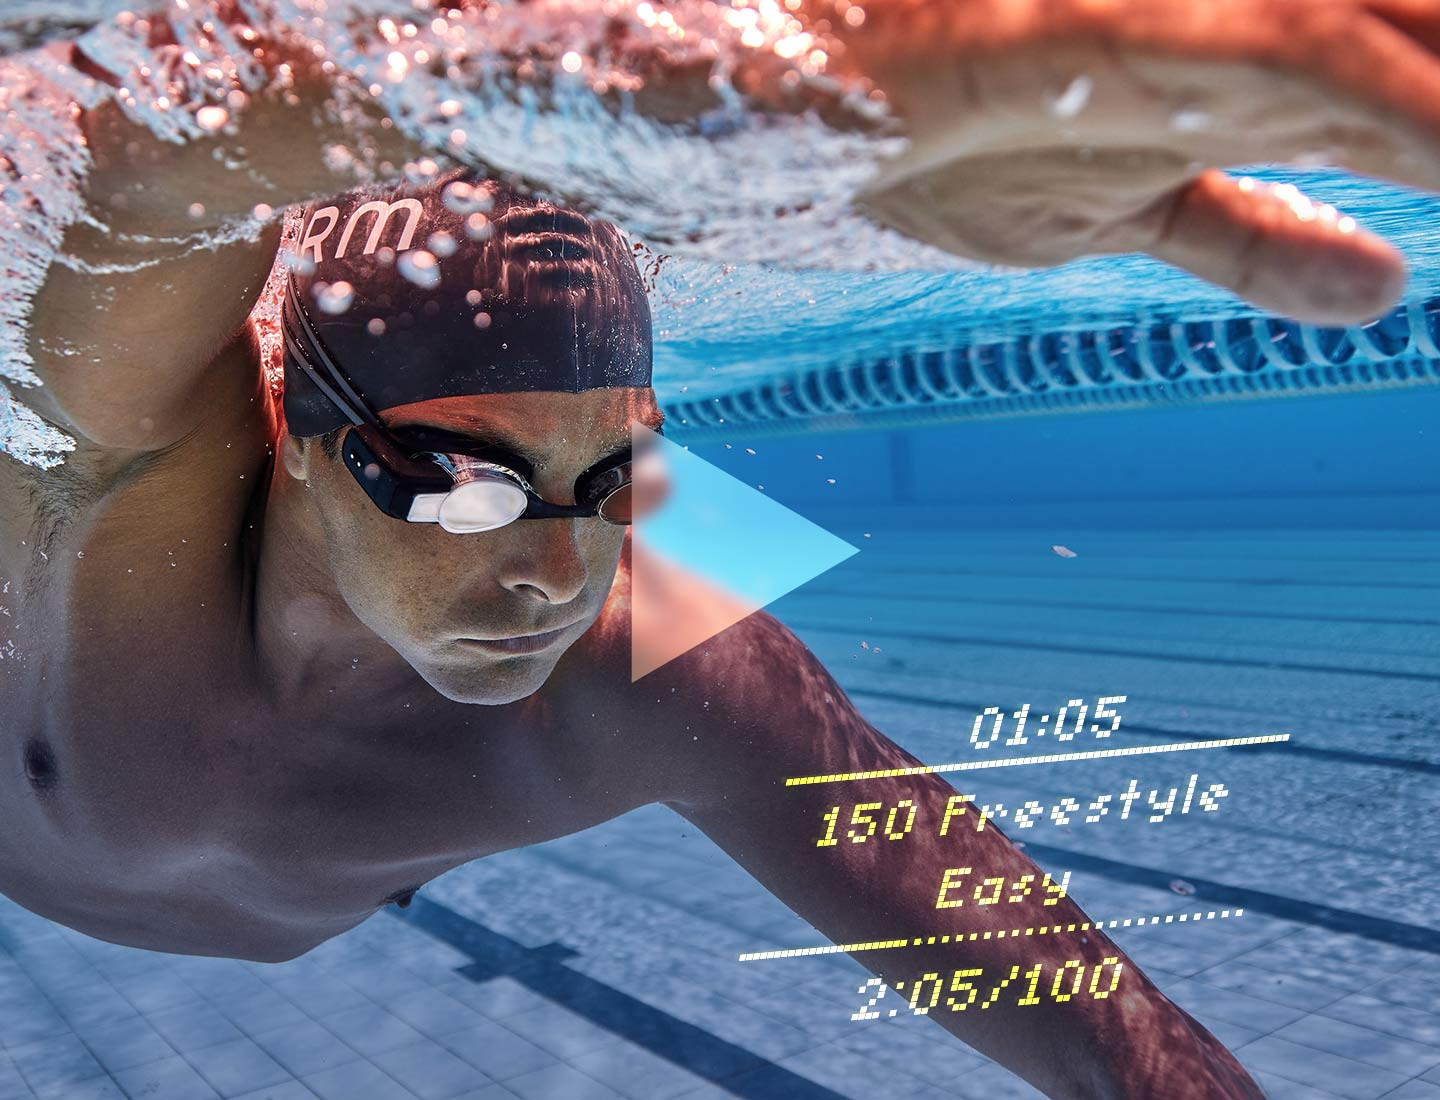 A swimmer wearing Form swim goggles with the in-goggle display showing the intensity of workout, time, and pace in real-time